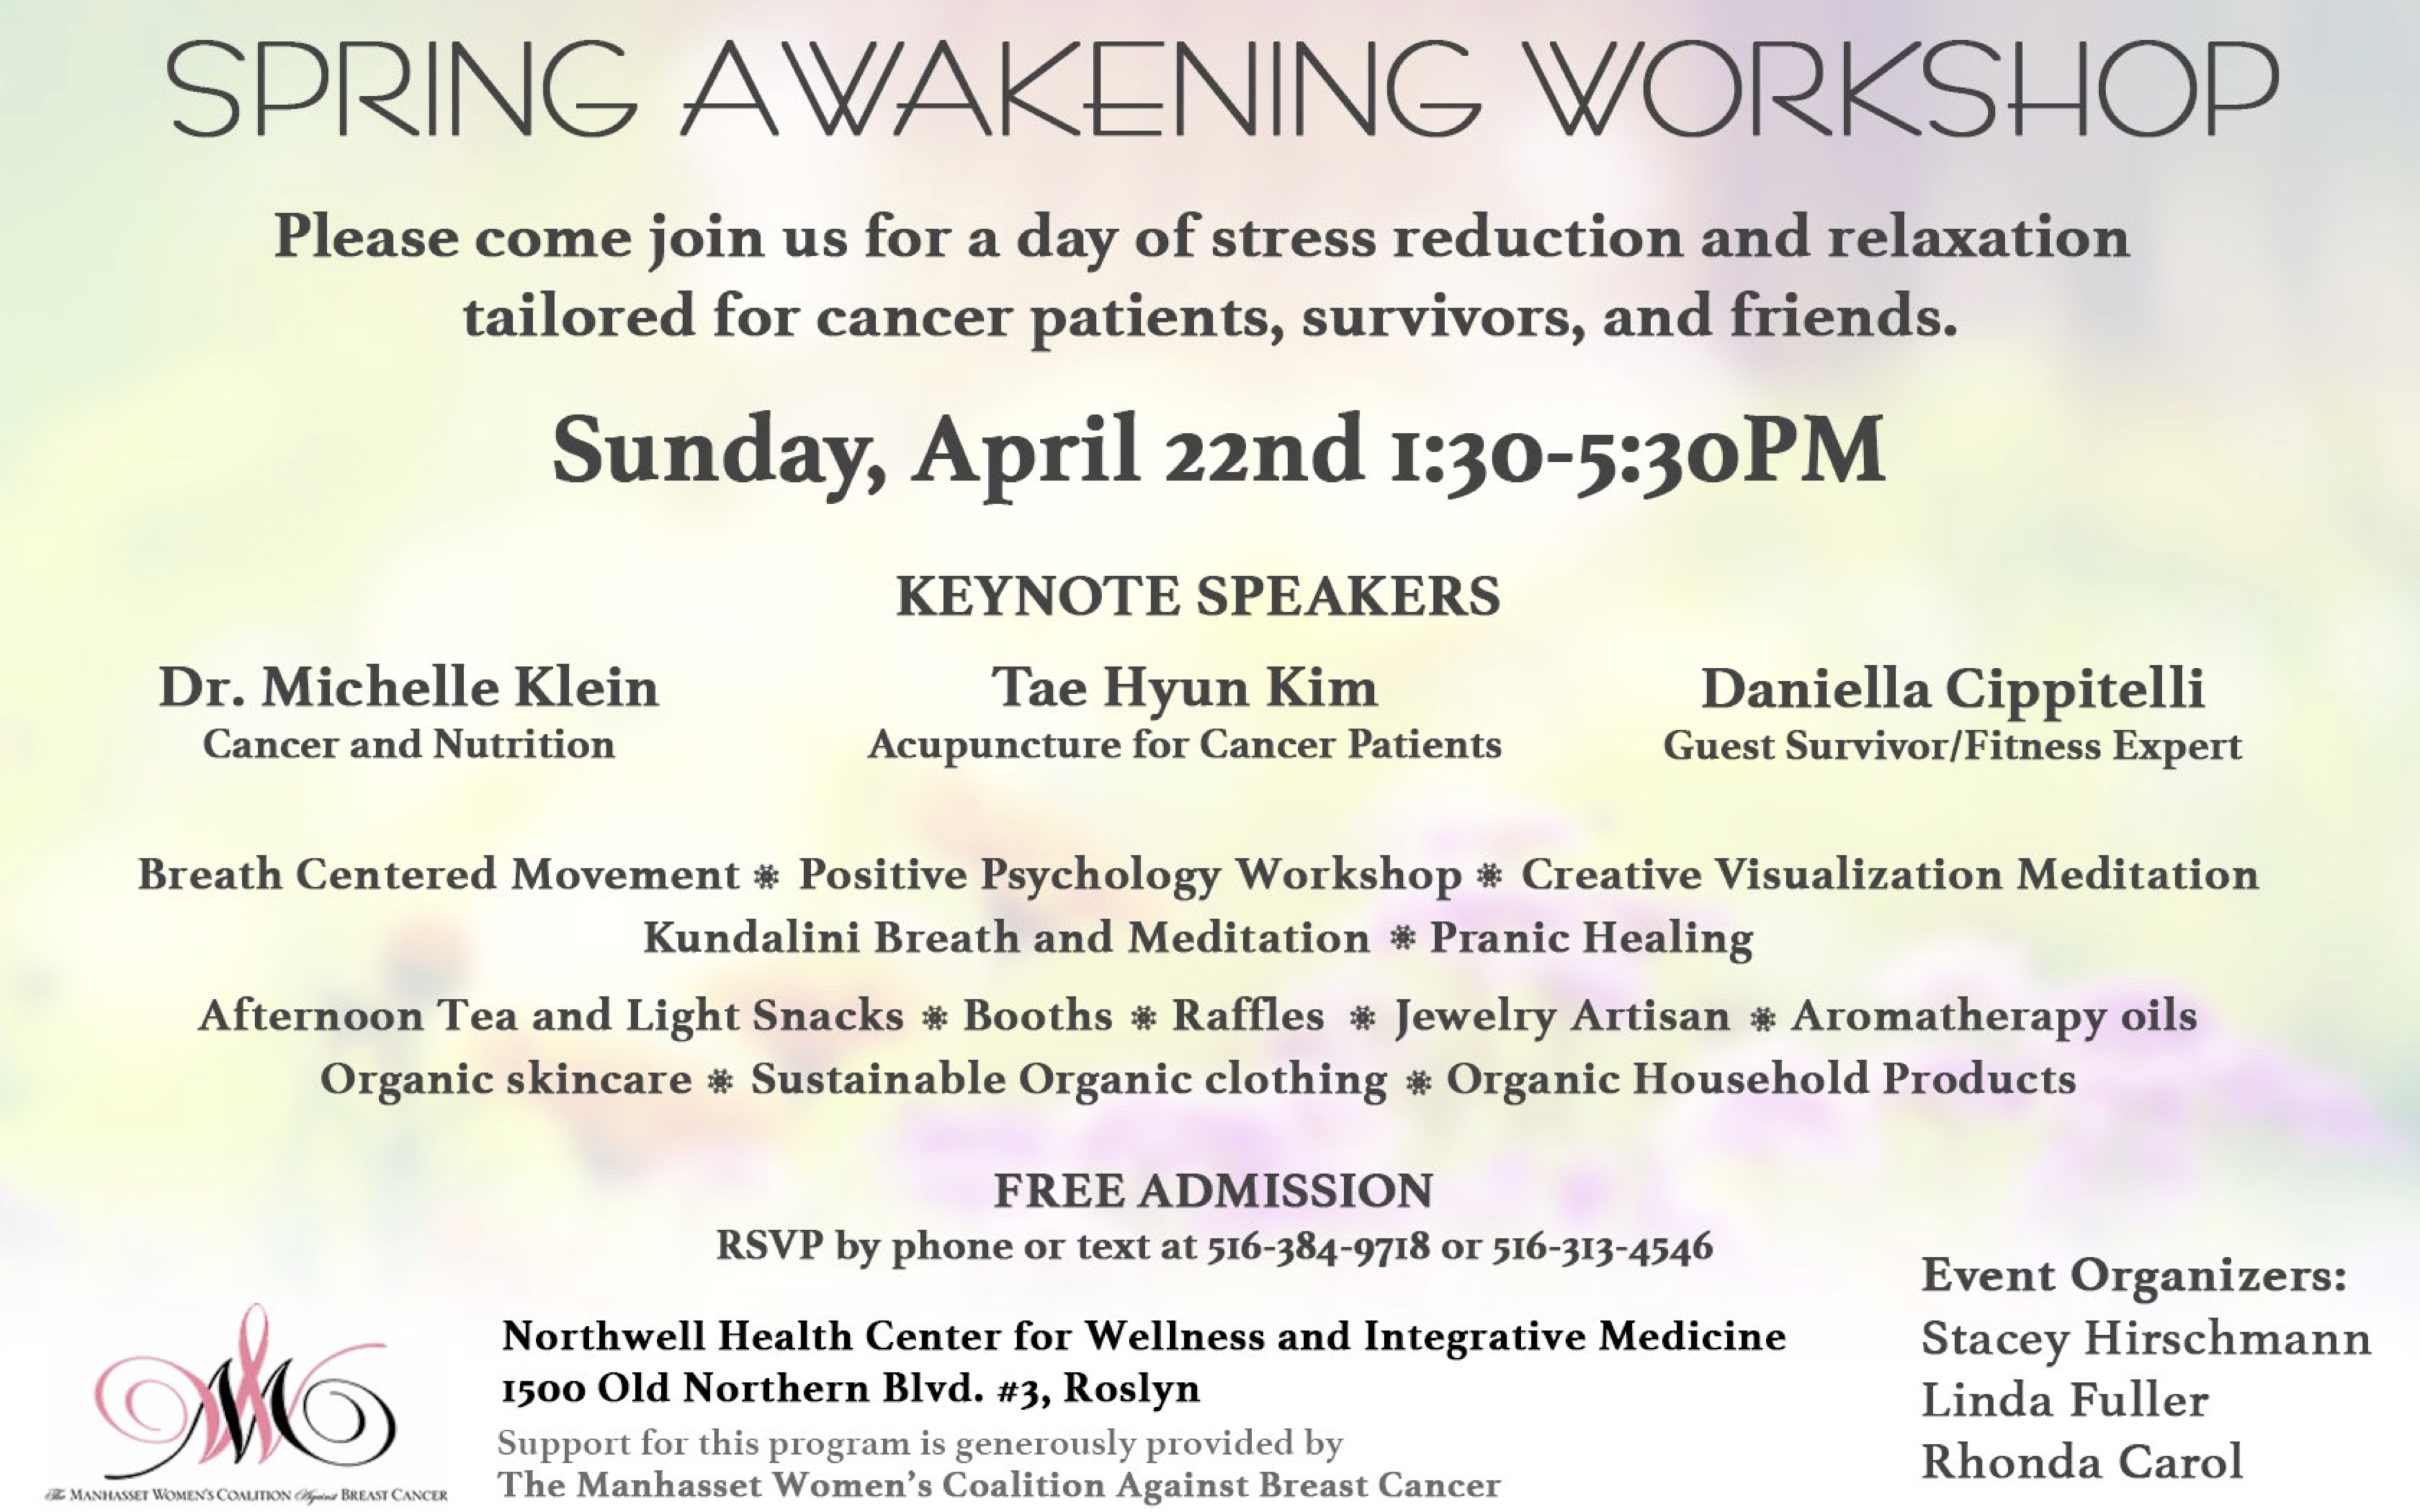 Spring Awakening Workshop